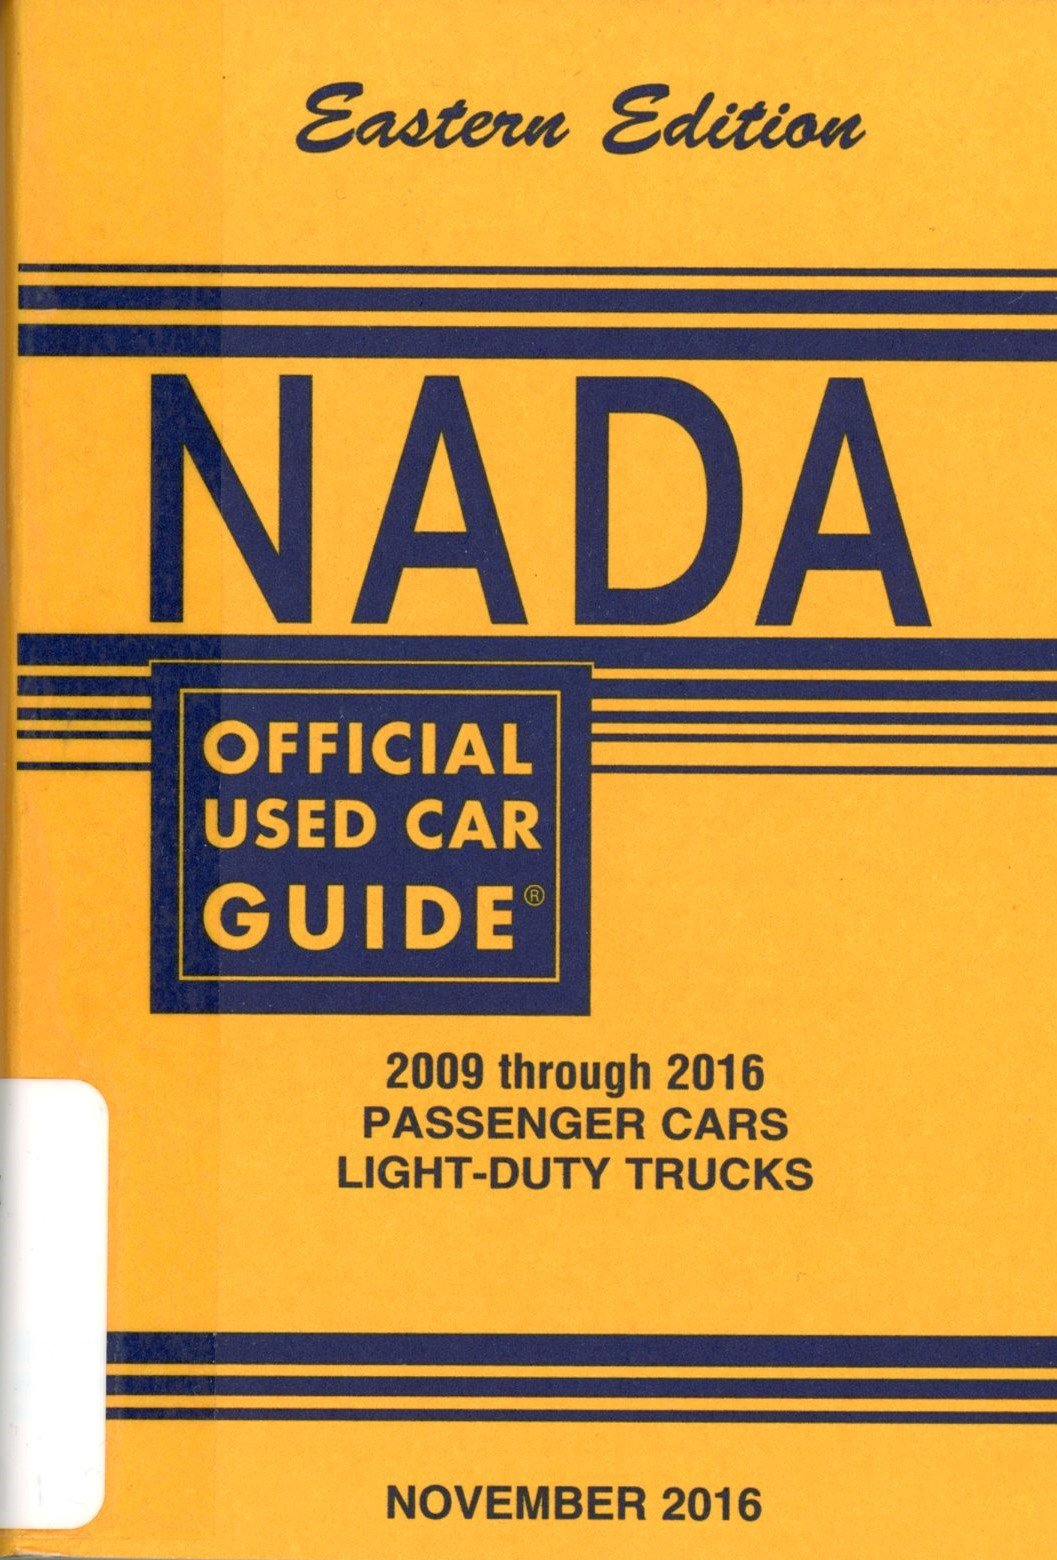 NADA Official Used Car Guide - Eastern Edition - 2098 through 2016 ...